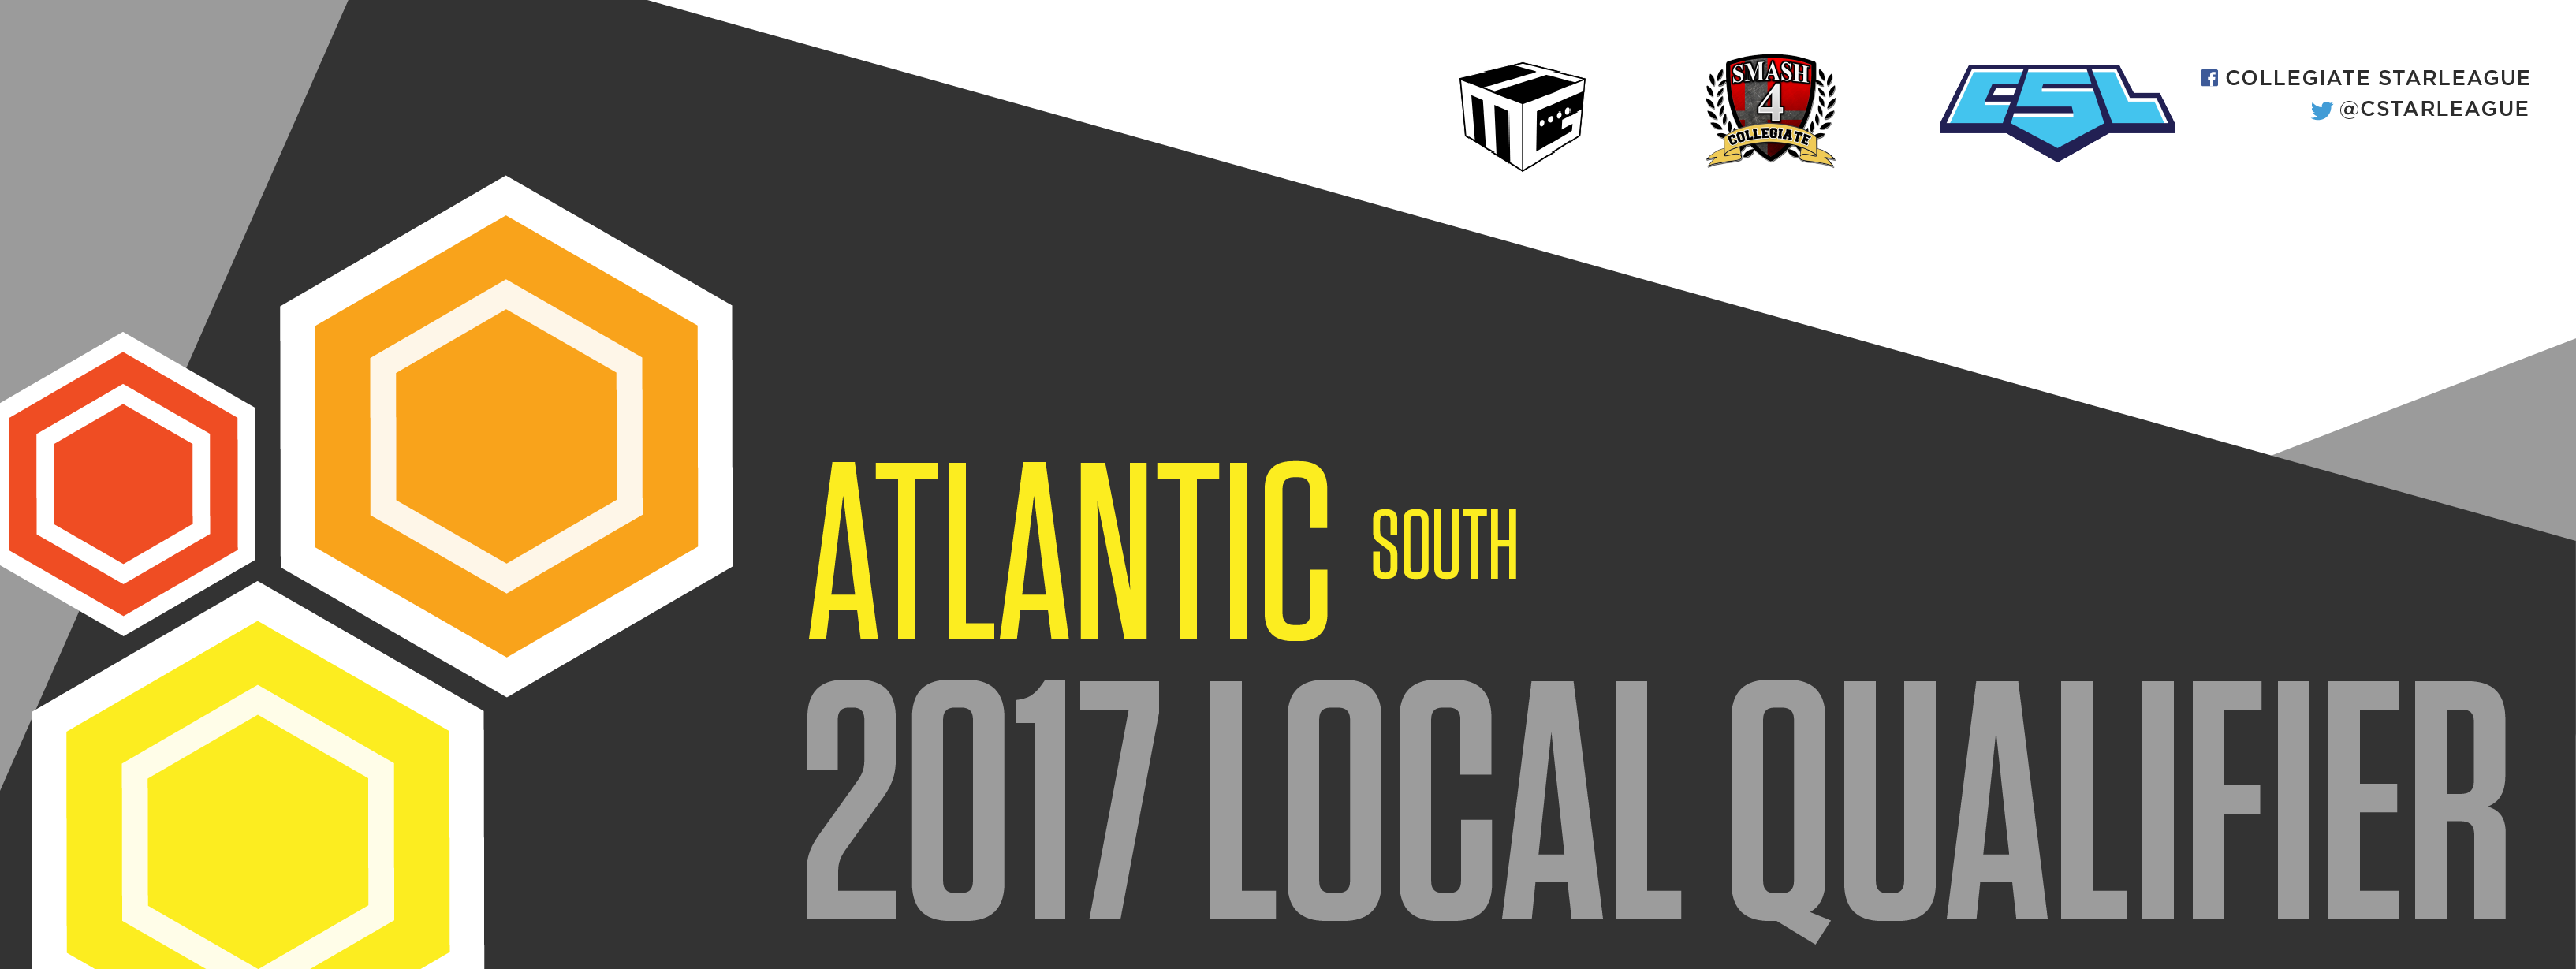 Atlantic south 01